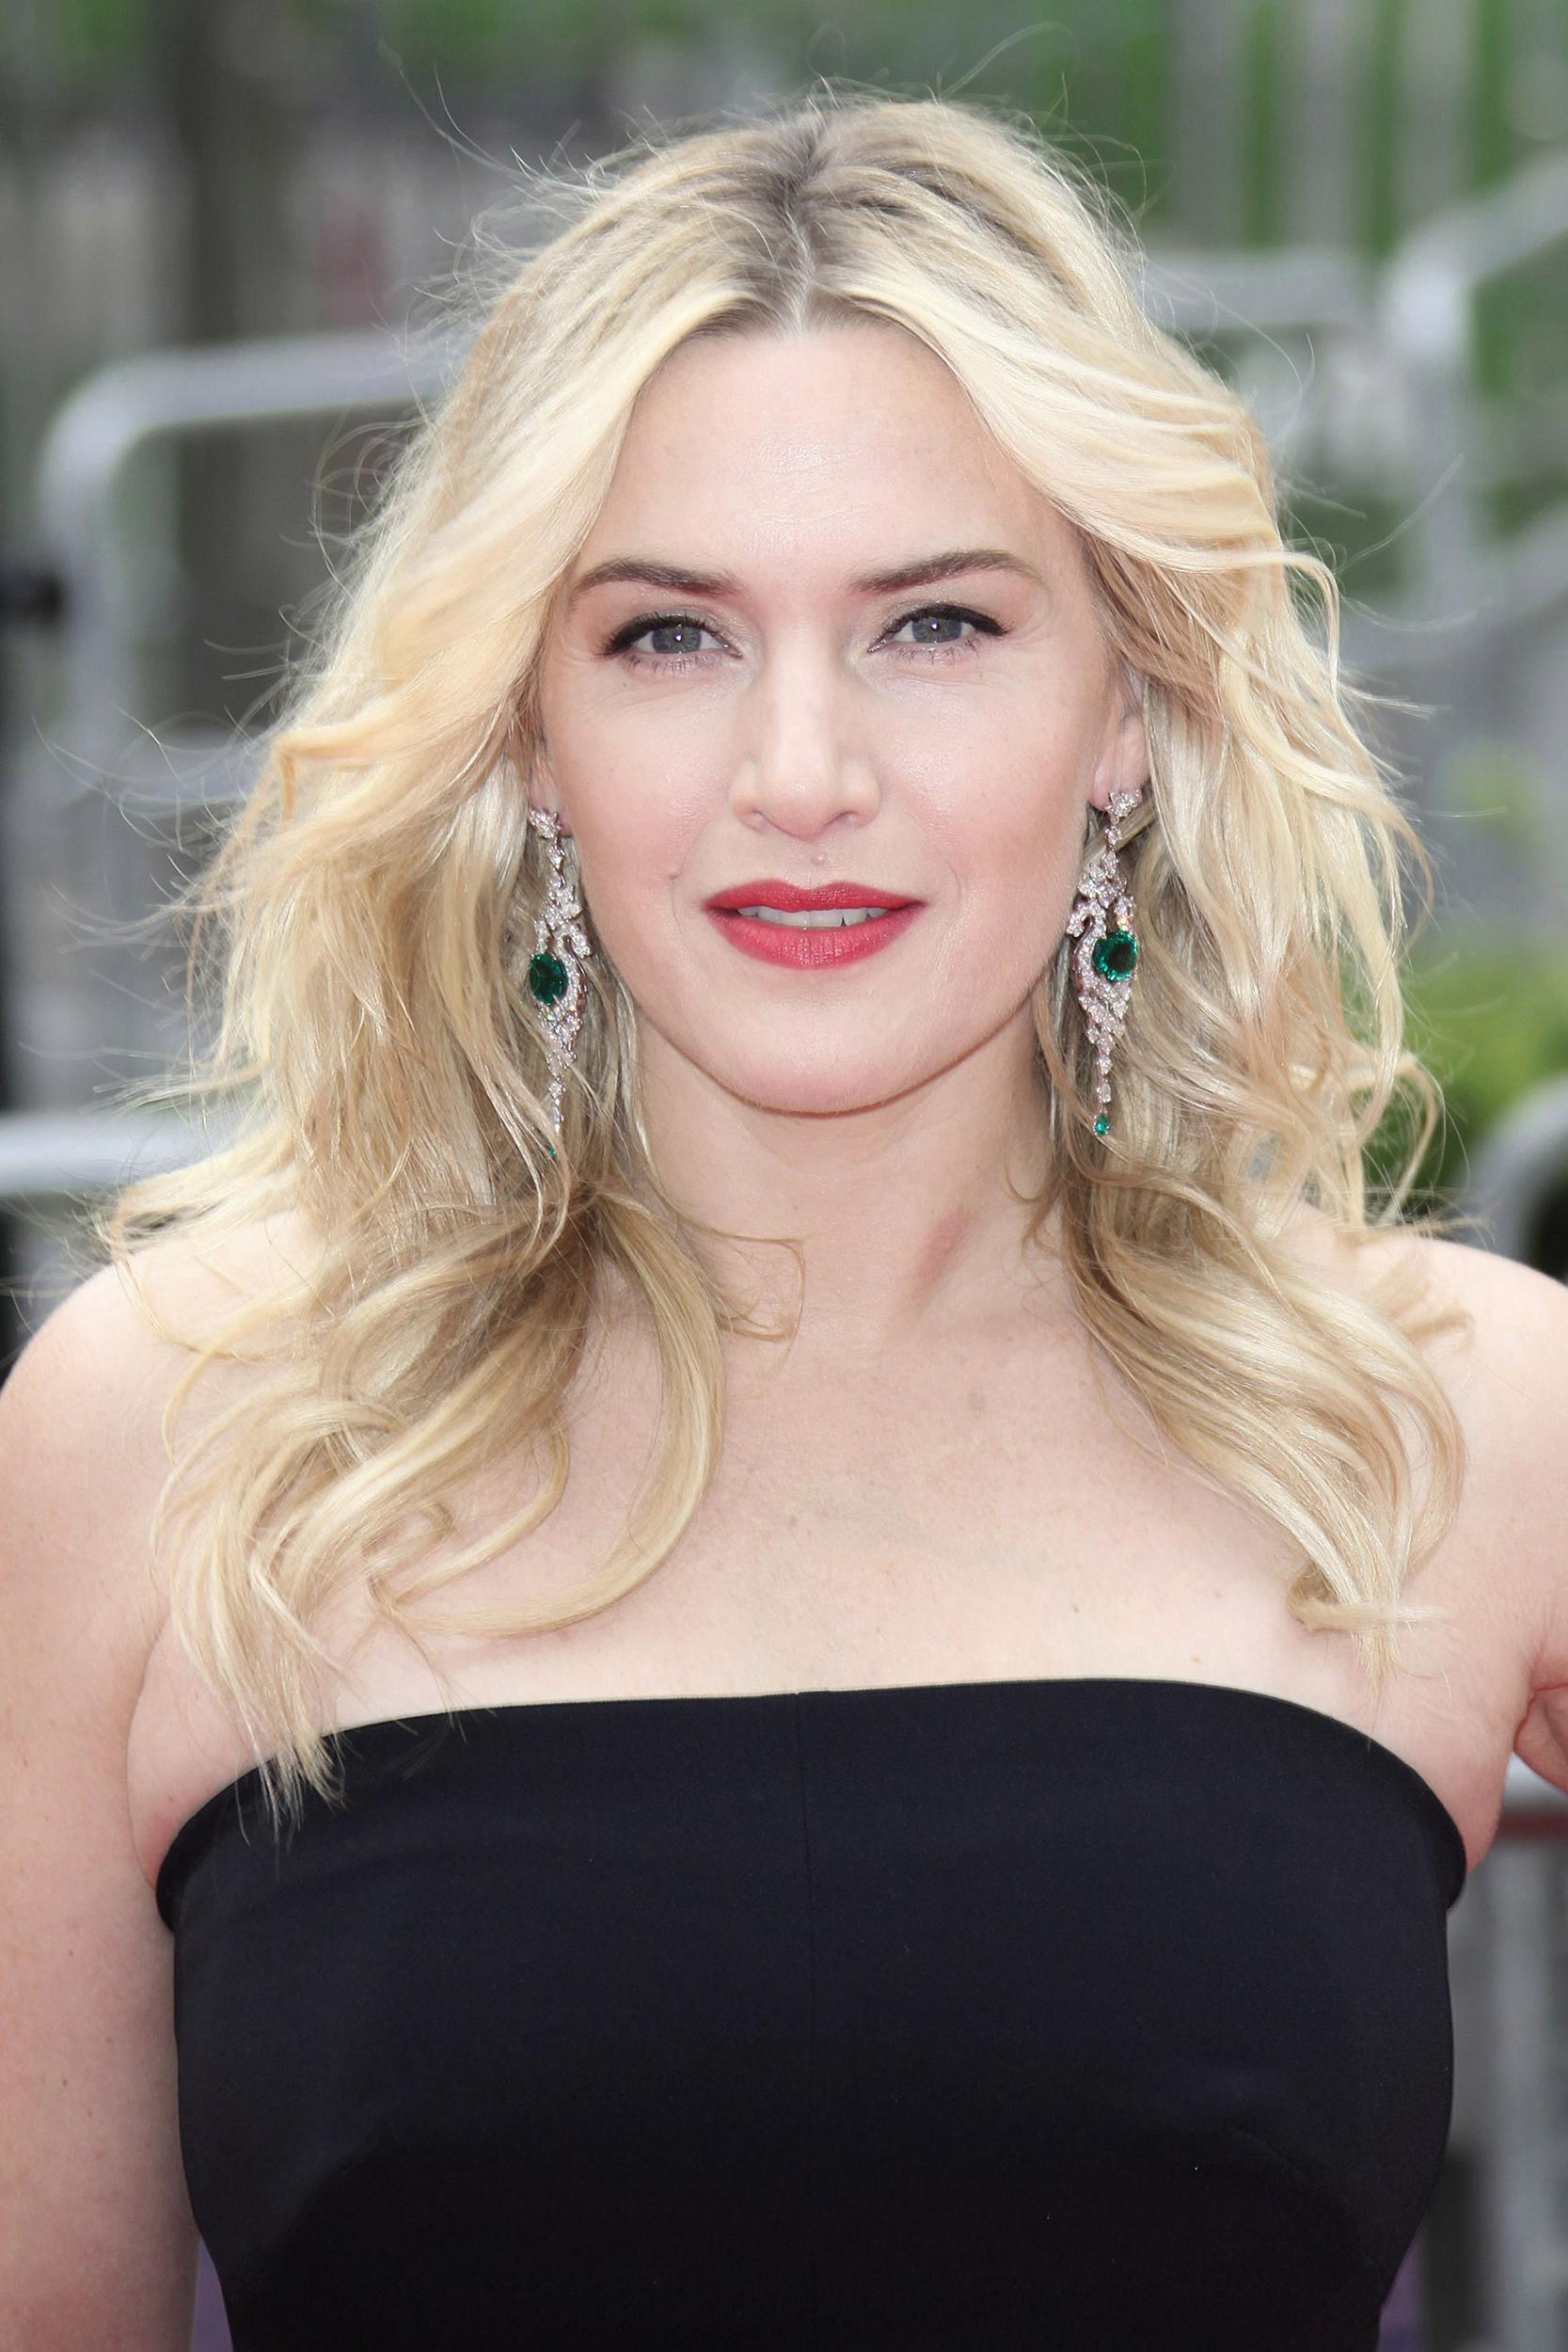 Kate Winslet Recent Photos >> Kate Winslet Divergent Wiki Fandom Powered By Wikia